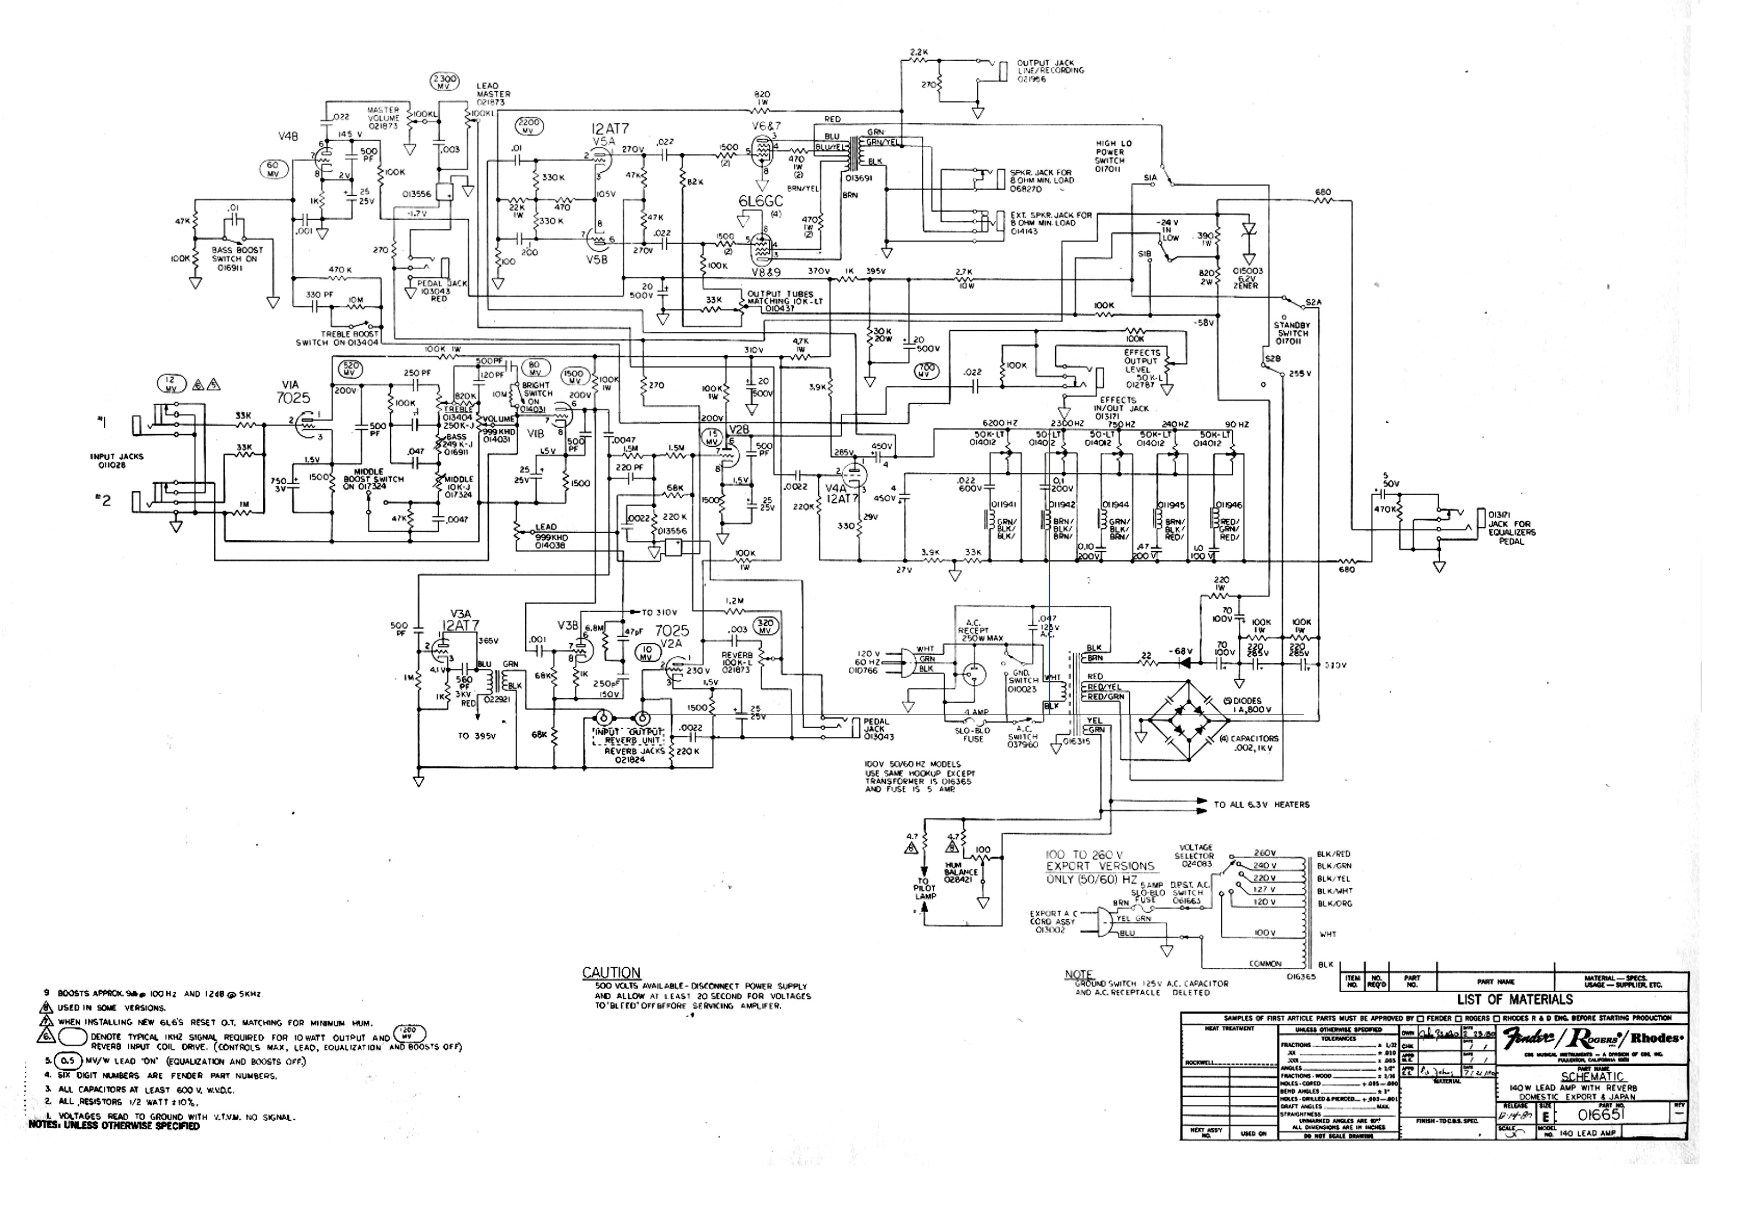 [DIAGRAM_34OR]  Federal Signal Corporation Pa300 Wiring Diagram | Diagram, Federation, Wire | Federal Siren Pa300 Wiring Diagram |  | Pinterest